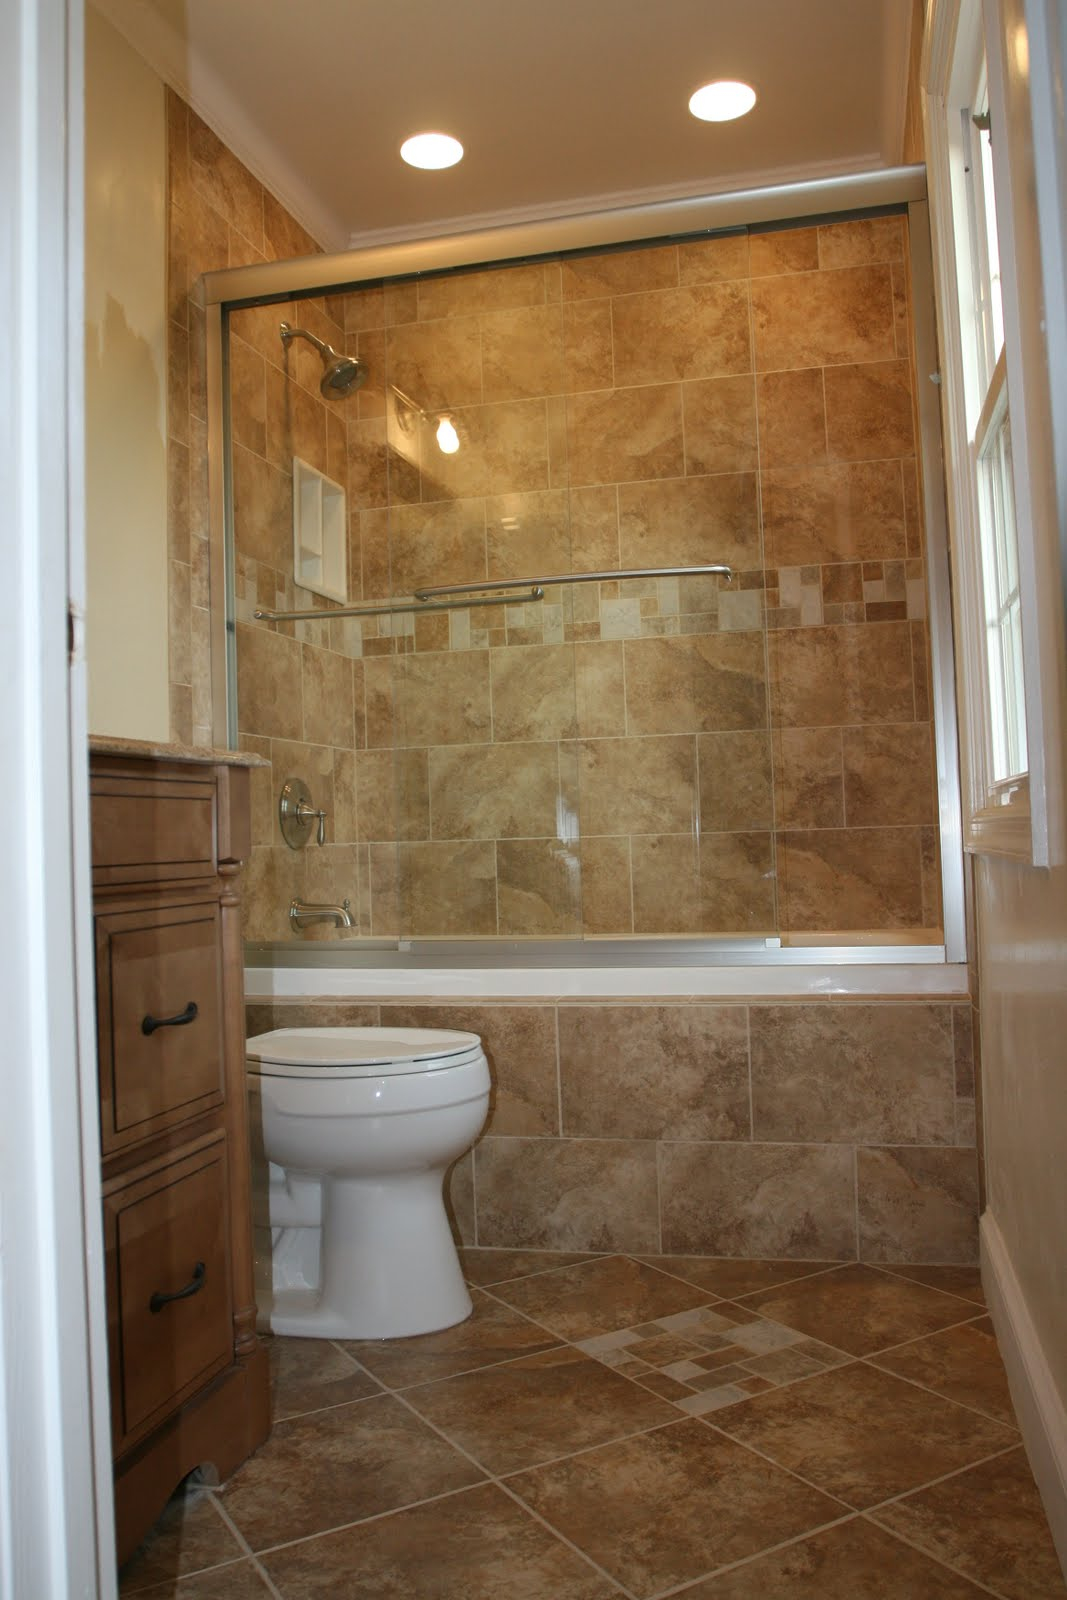 Bathroom remodeling design ideas tile shower niches Bathroom tiles ideas for small bathrooms